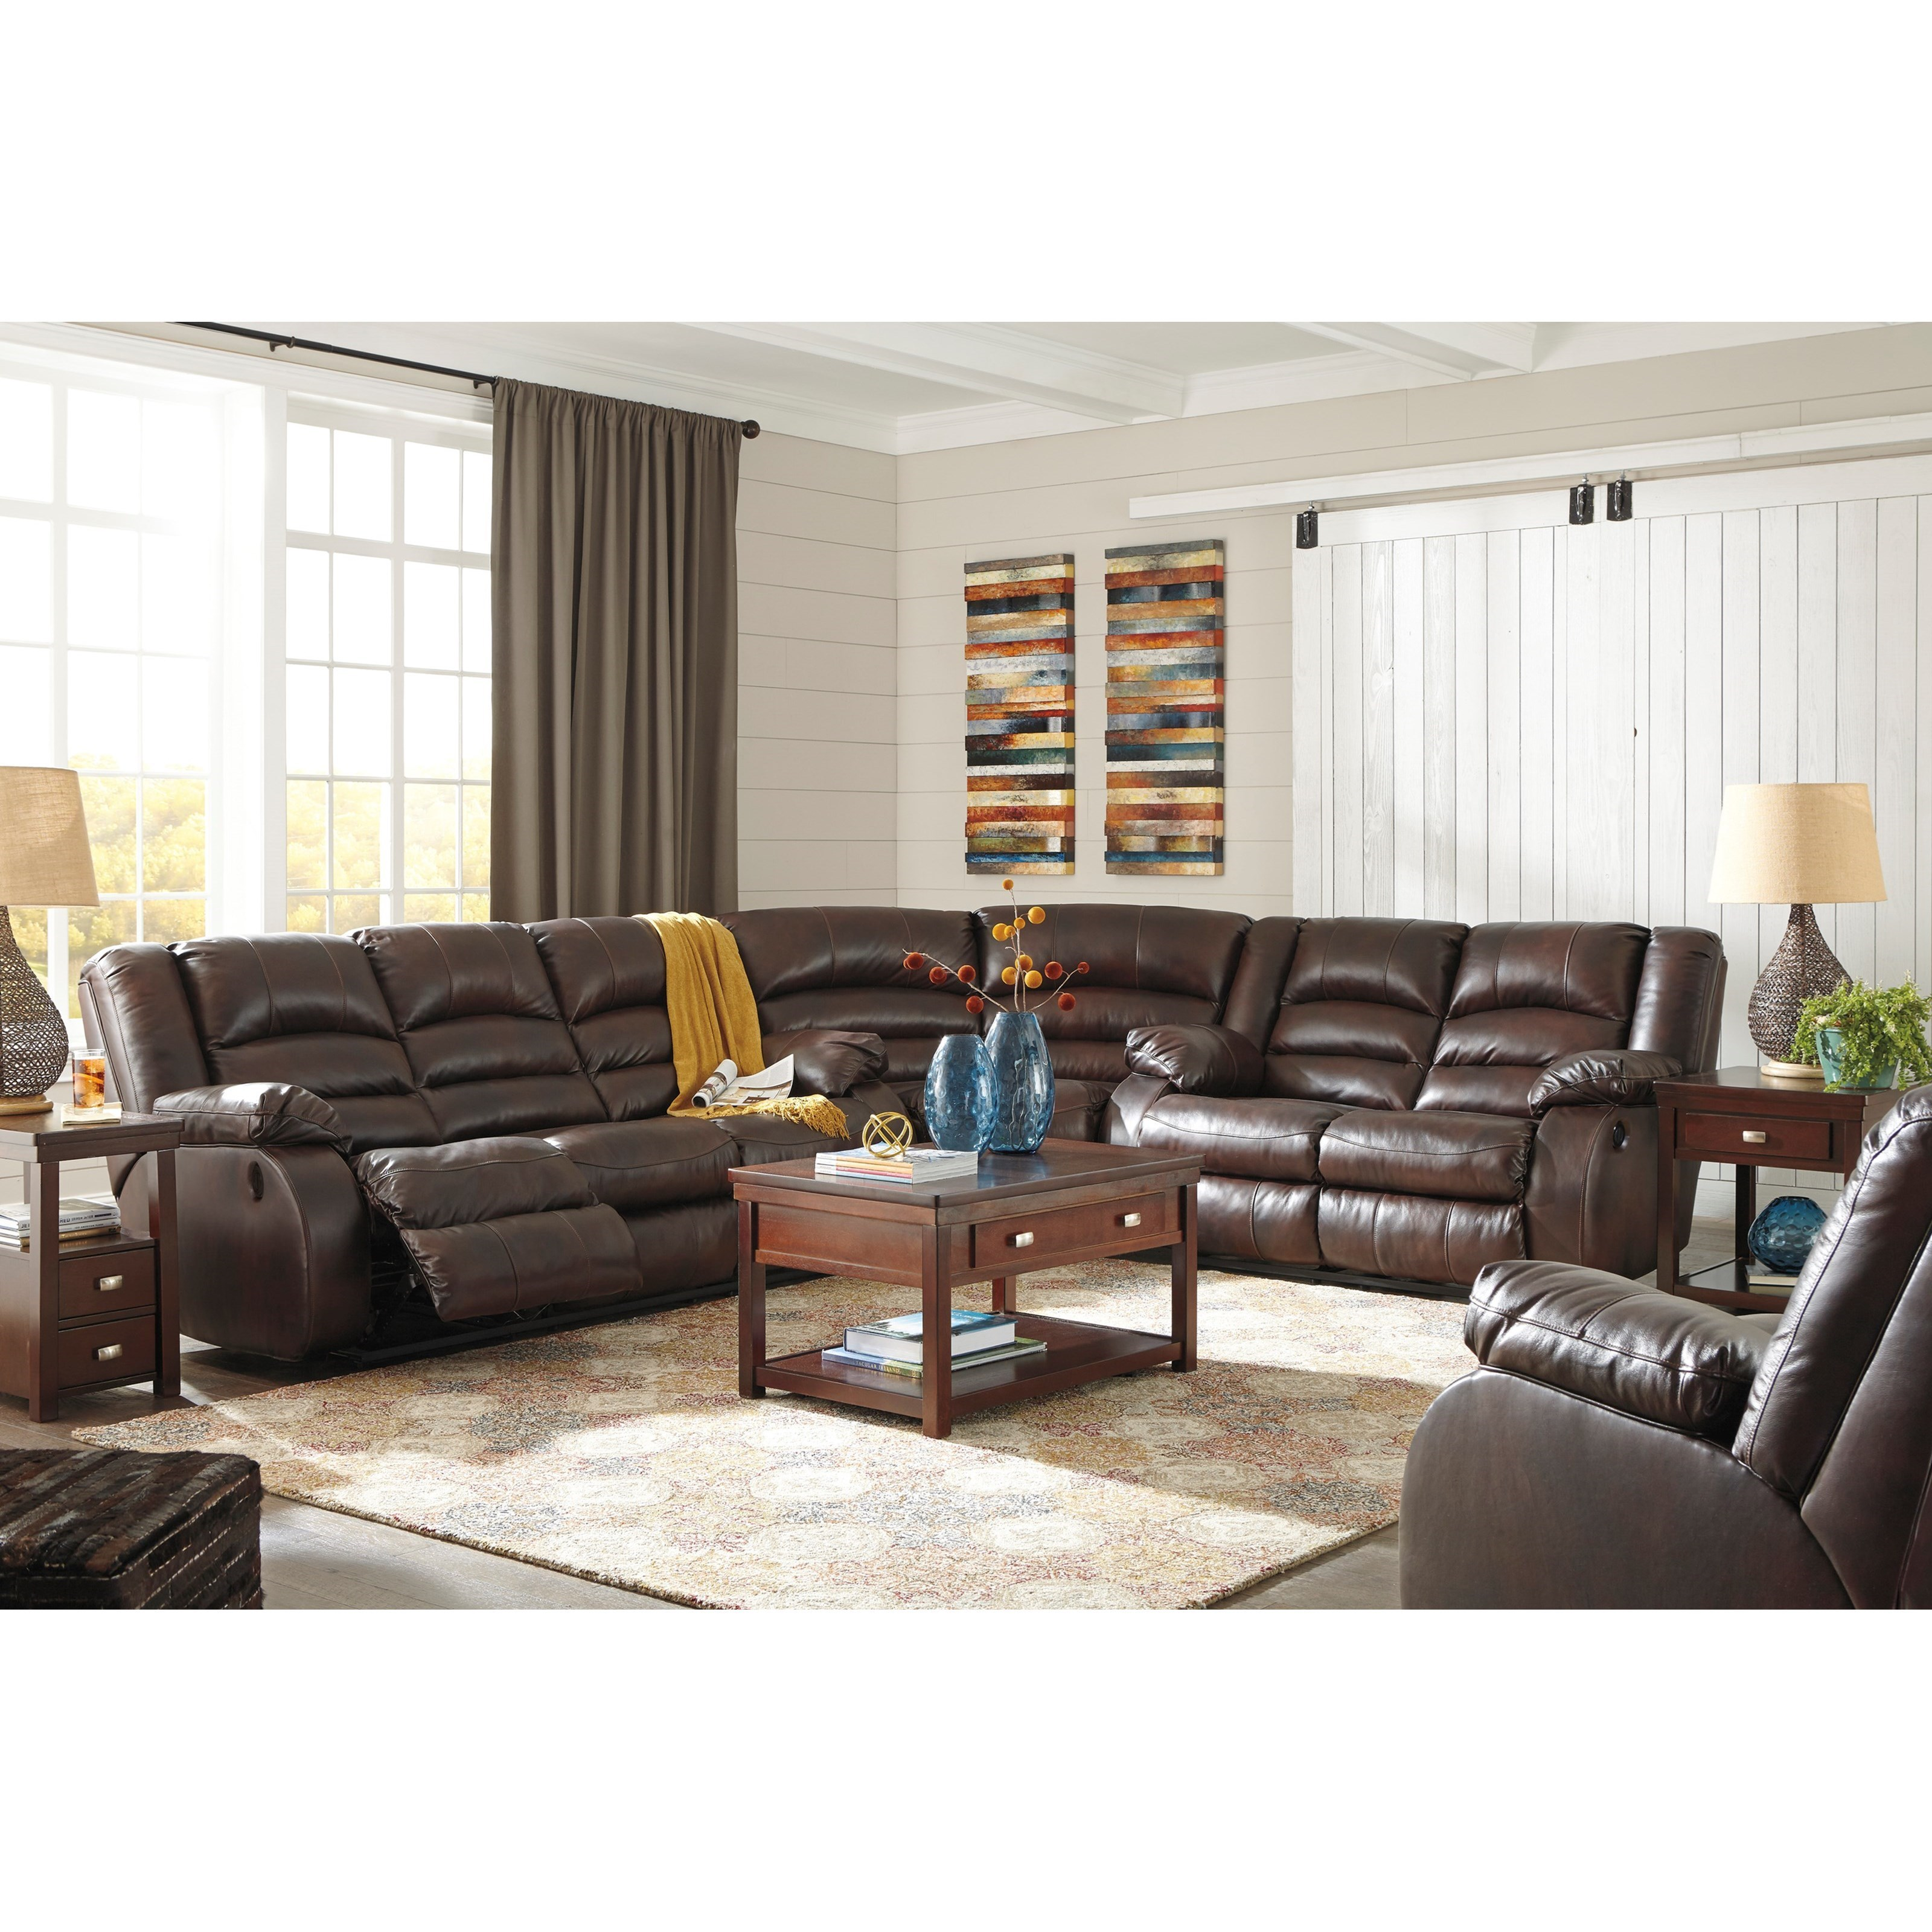 Levelland Reclining Living Room Group By Signature Design By Ashley